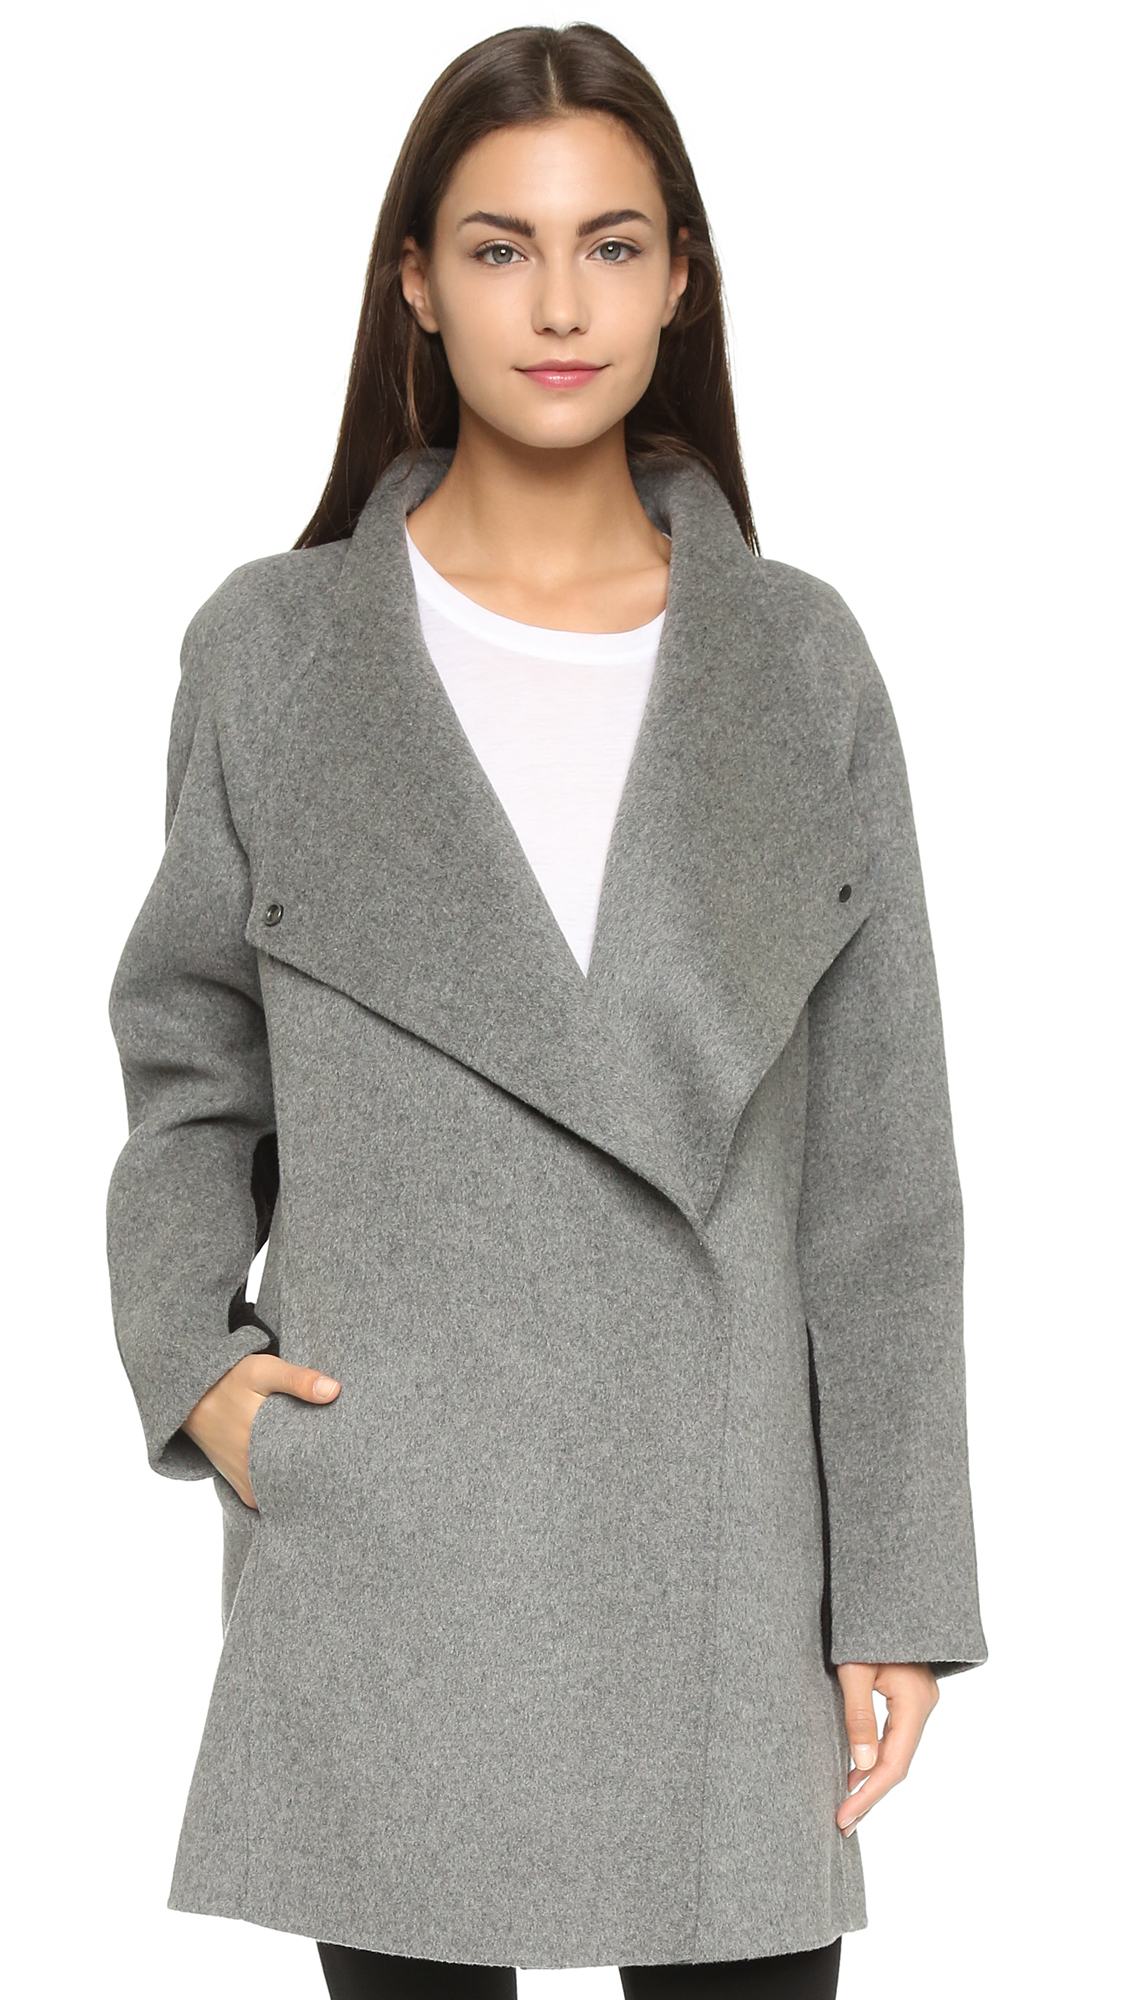 Vince Two Tone Sweater Coat - Charcoal Melange/black in Gray | Lyst